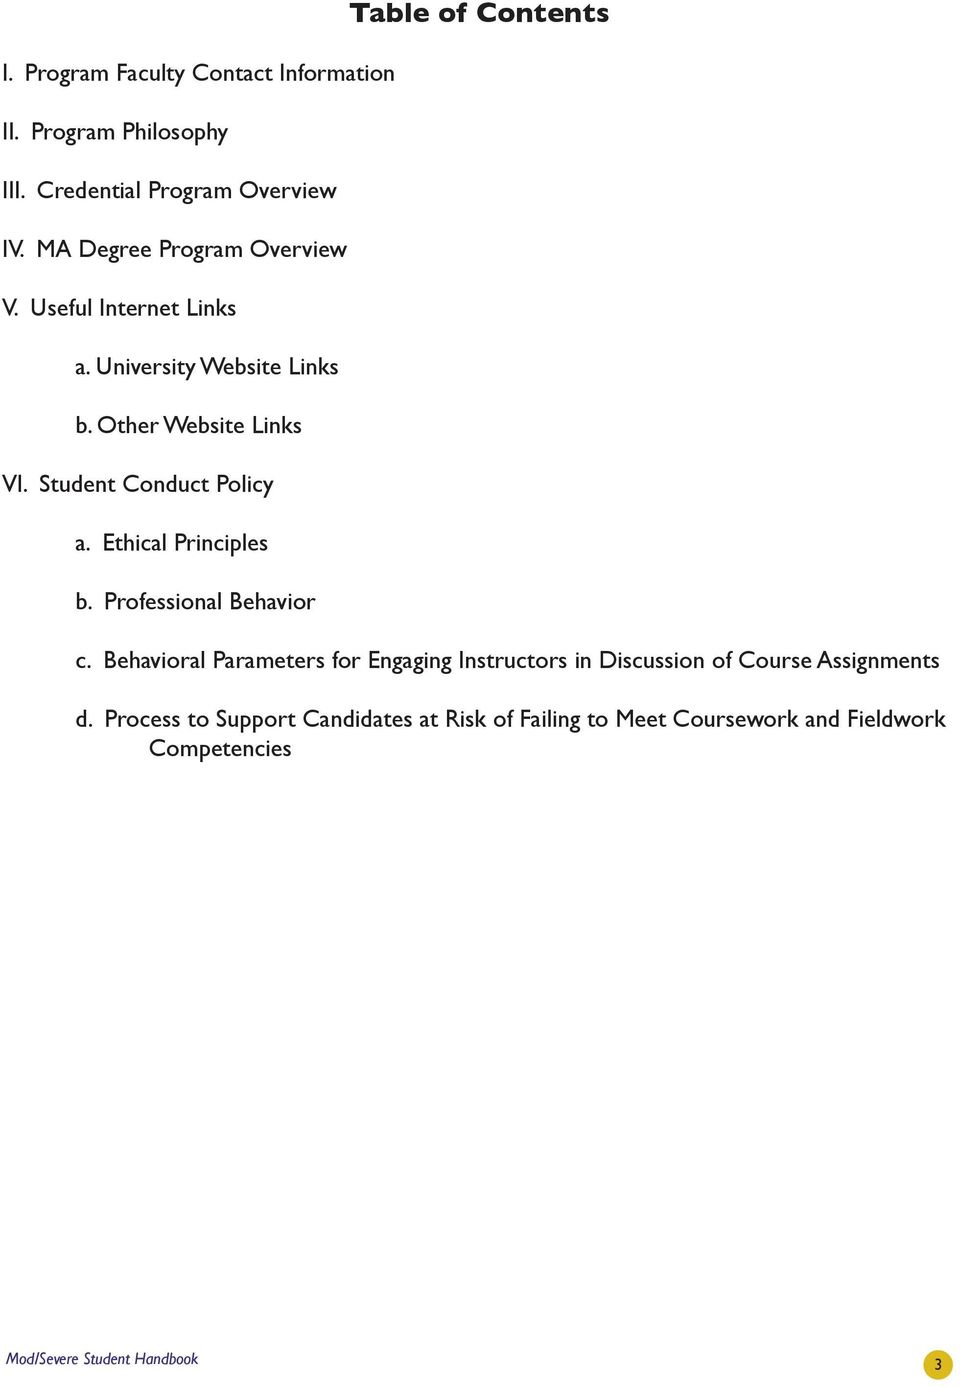 Student Conduct Policy a. Ethical Principles b. Professional Behavior Table of Contents c.